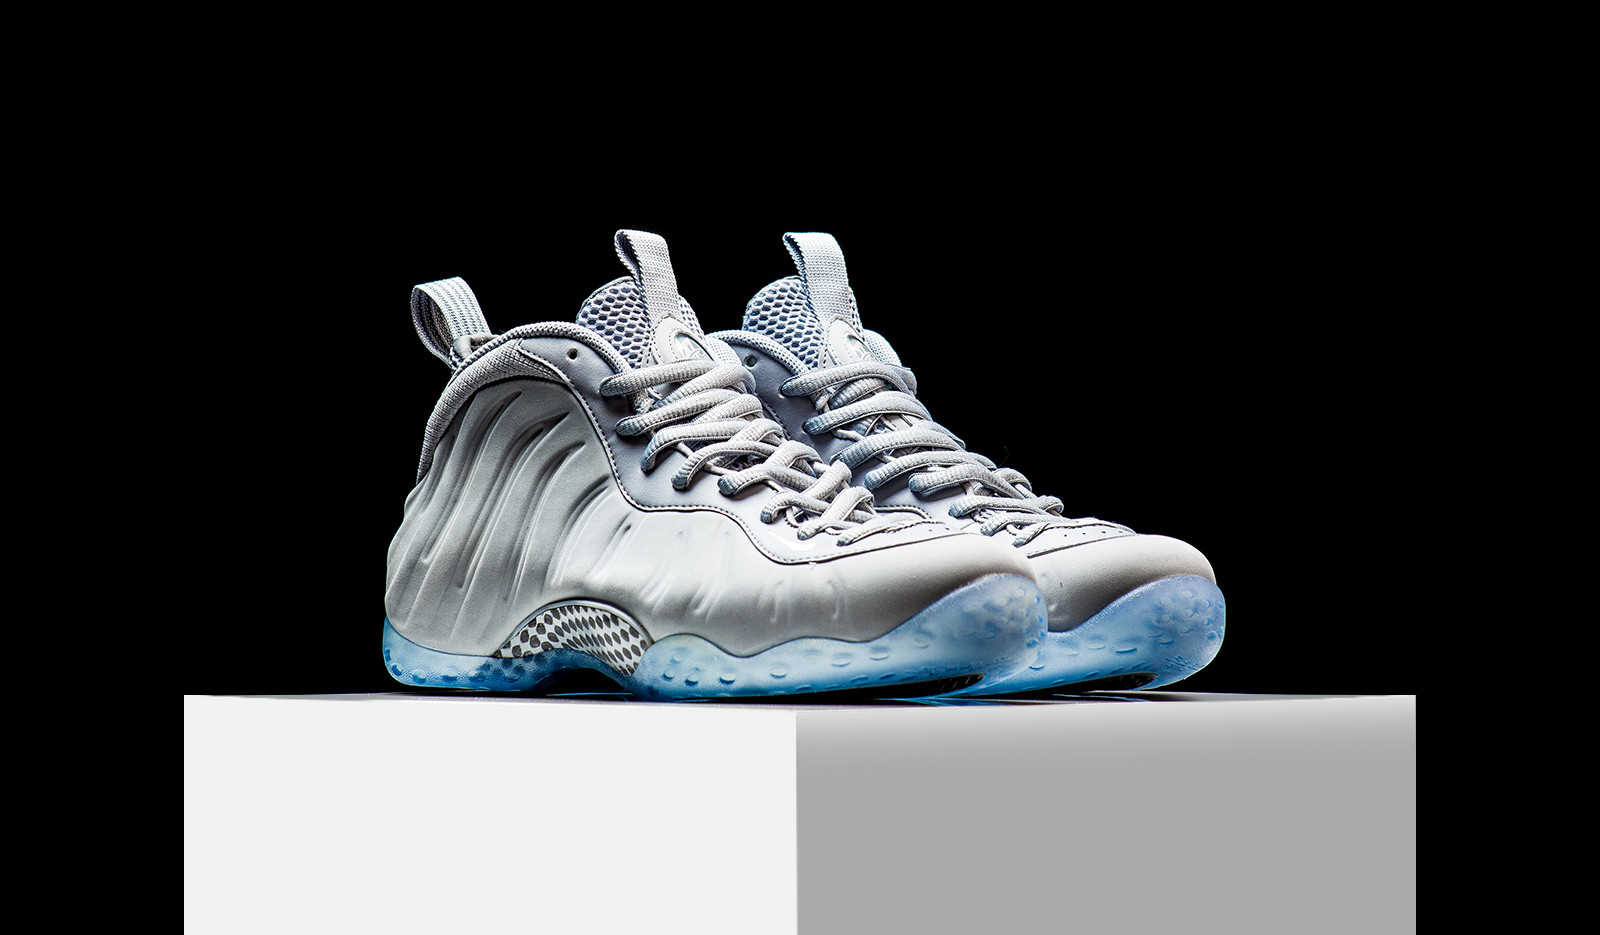 16c543ed548 Nike Air Foamposite One Premium Color  Wolf Grey White-Cool Grey-Black  Style  575420-007. Release Date  07 11 2015. Price   250.00